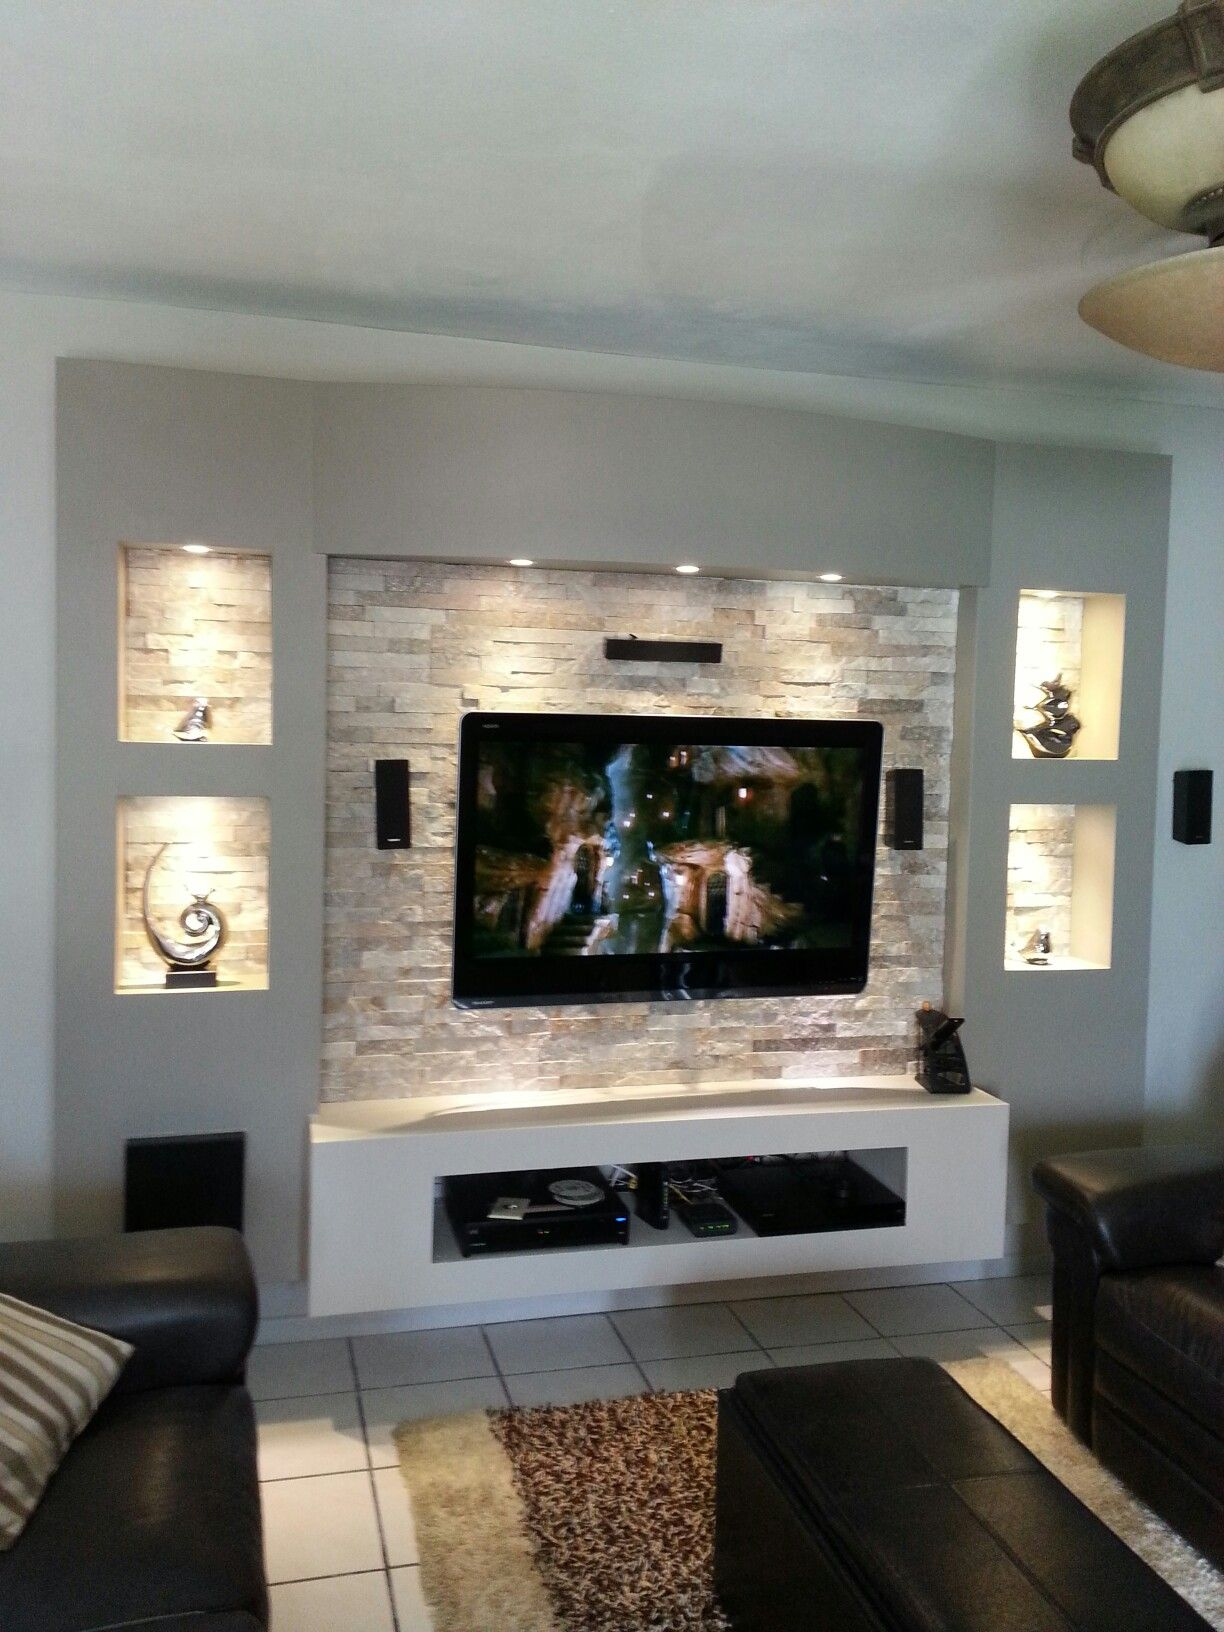 innovaci n tv unit my own projects tv wall design living room with fireplace tv wall decor. Black Bedroom Furniture Sets. Home Design Ideas